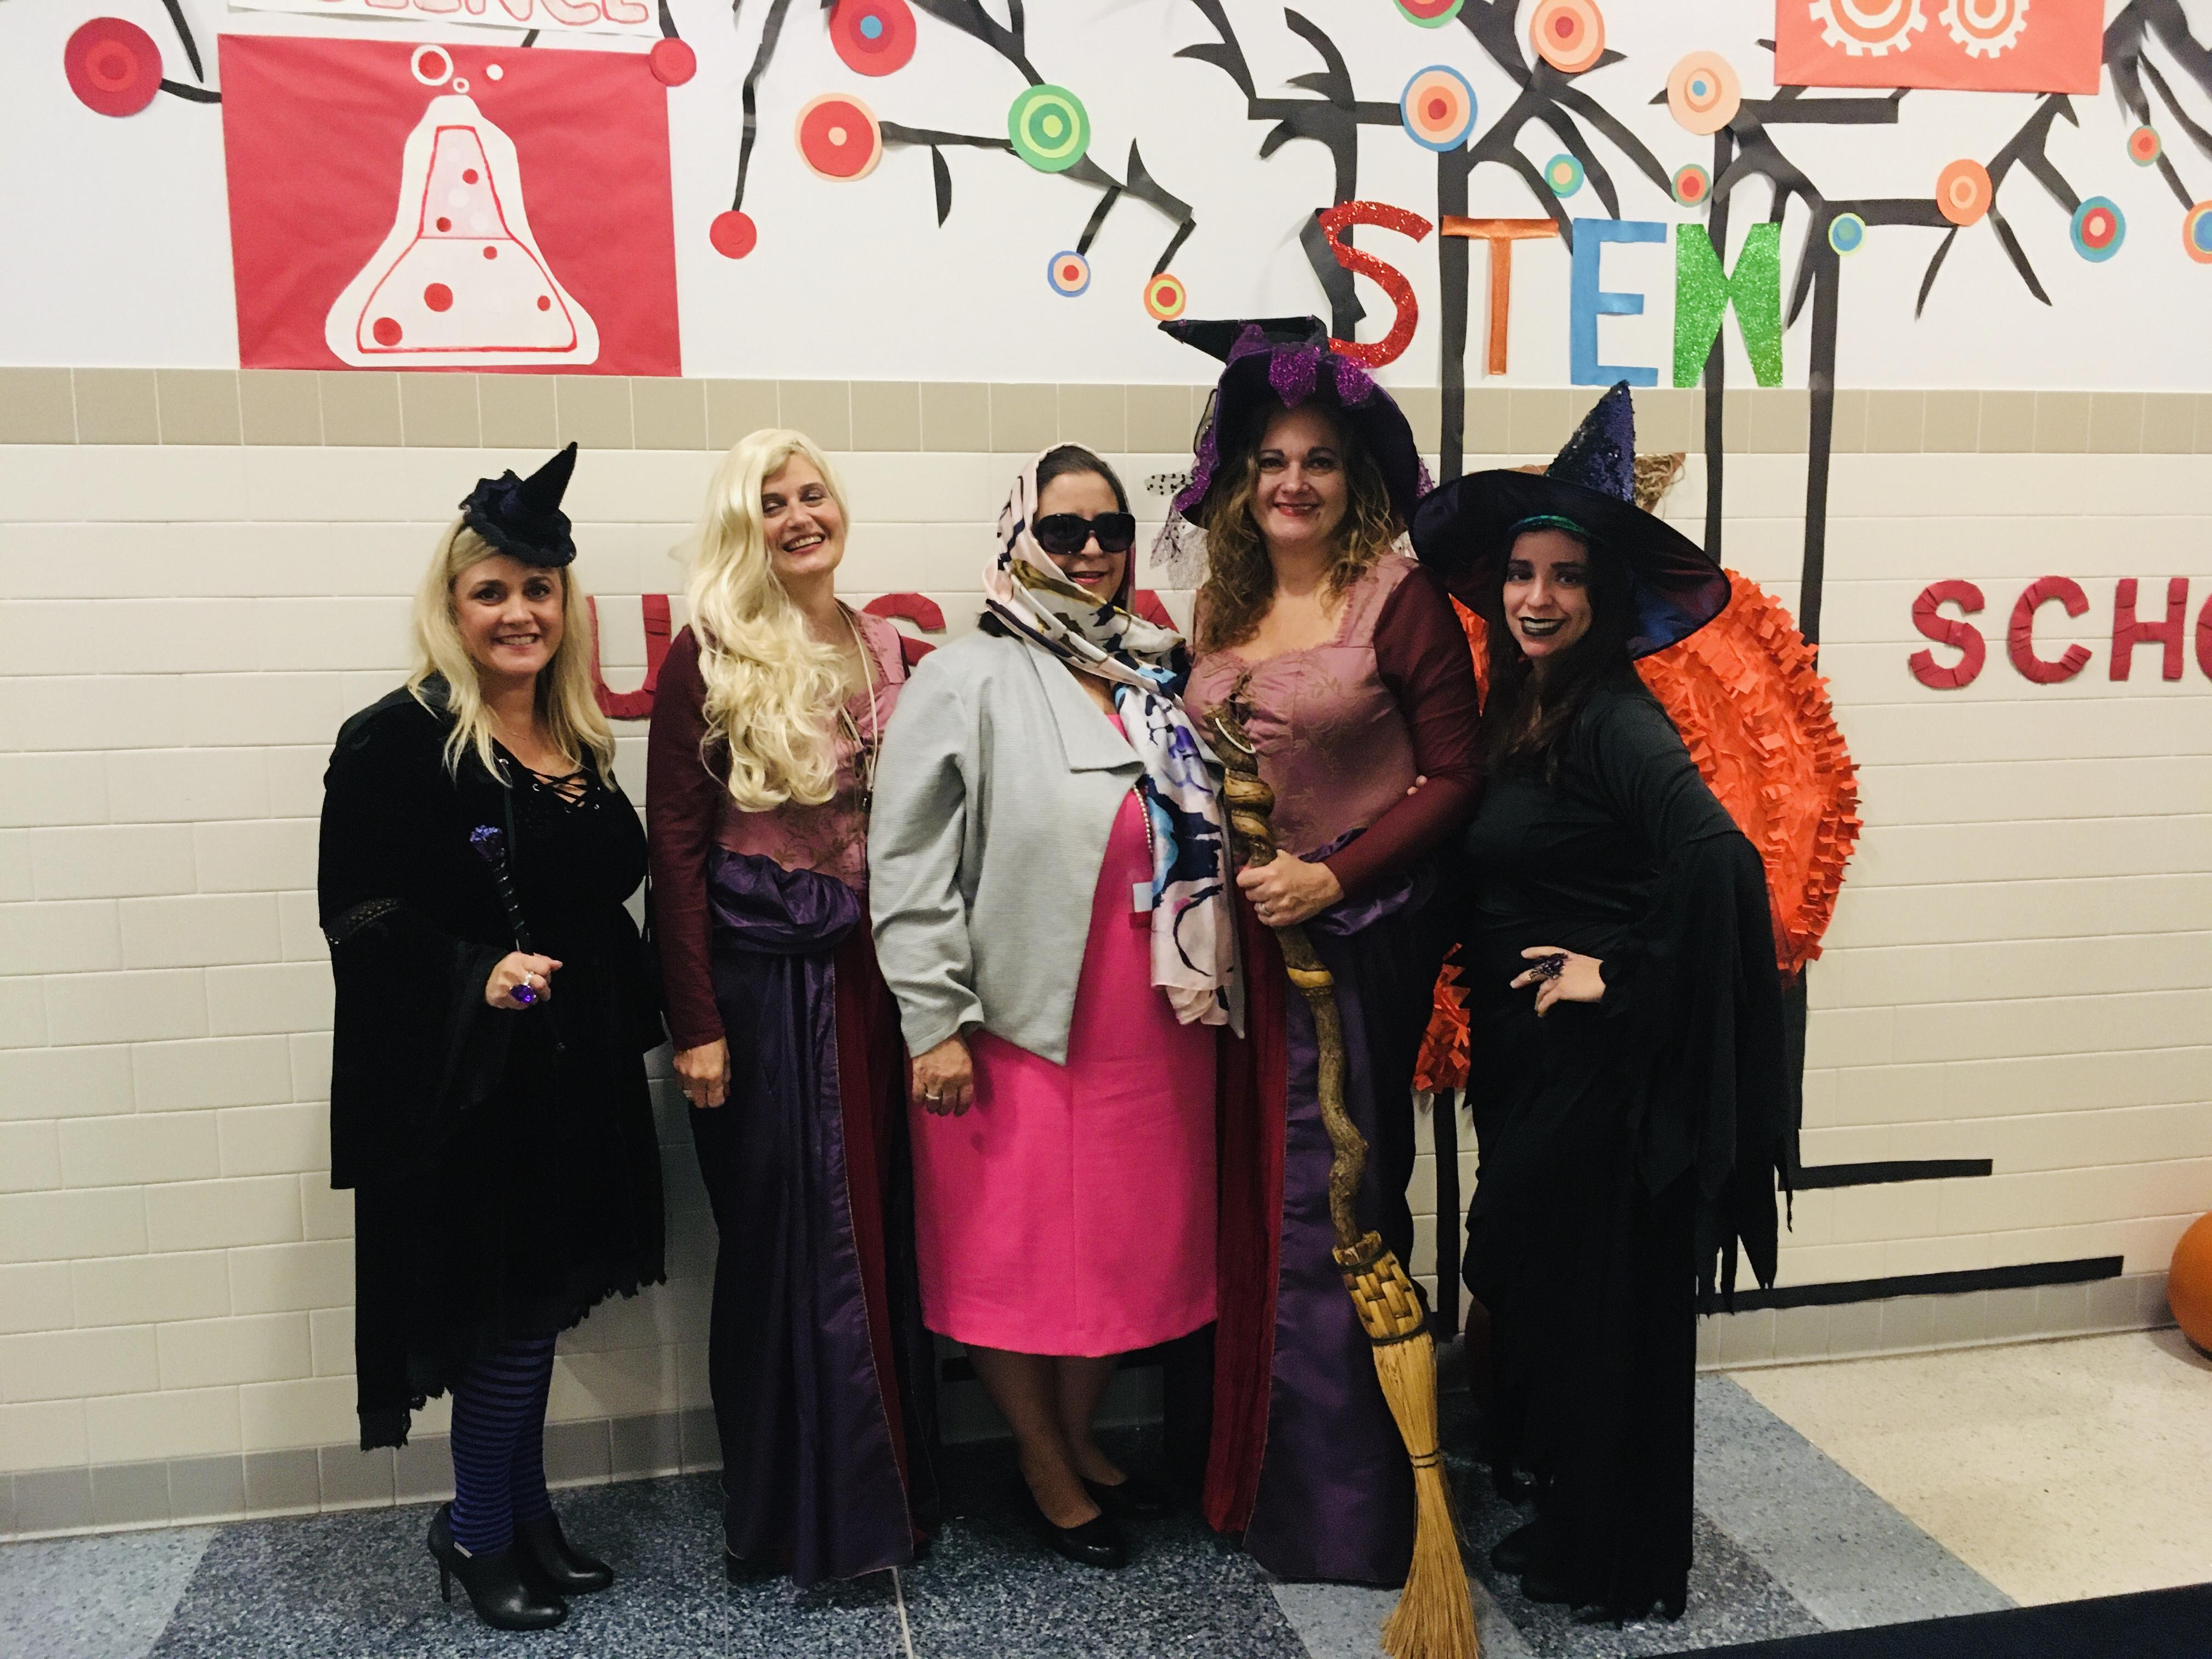 Hudson Admin with Supt Abatto in costume